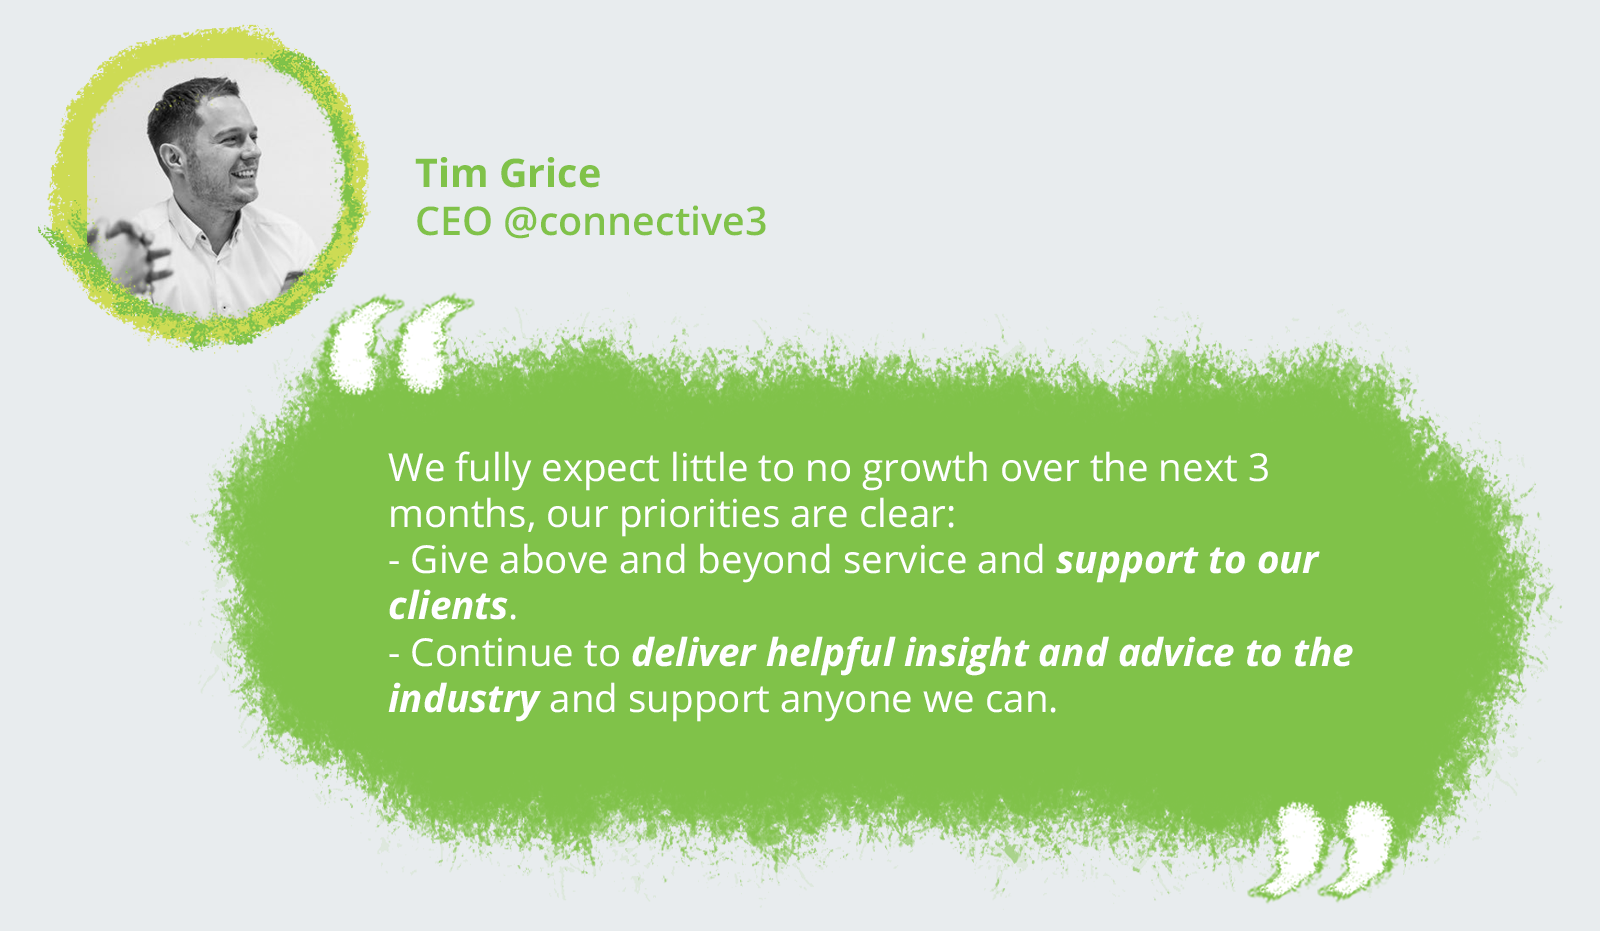 Tim Grice, CEO @connective3